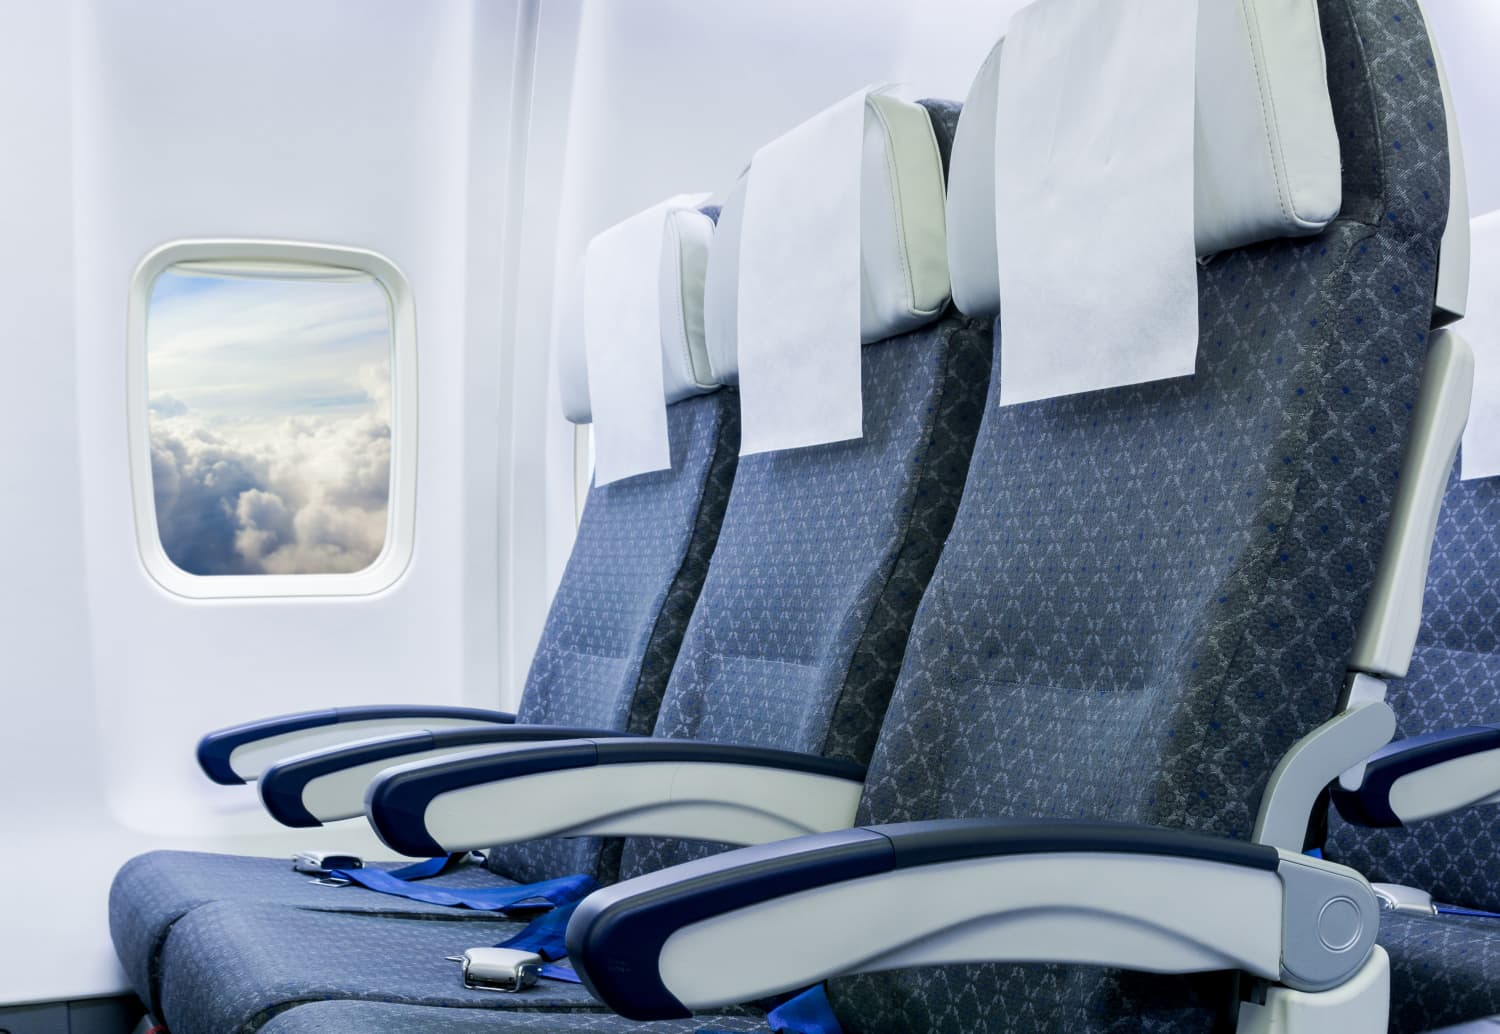 This New Airplane Seat Promises to Make Air Travel Way More Comfortable